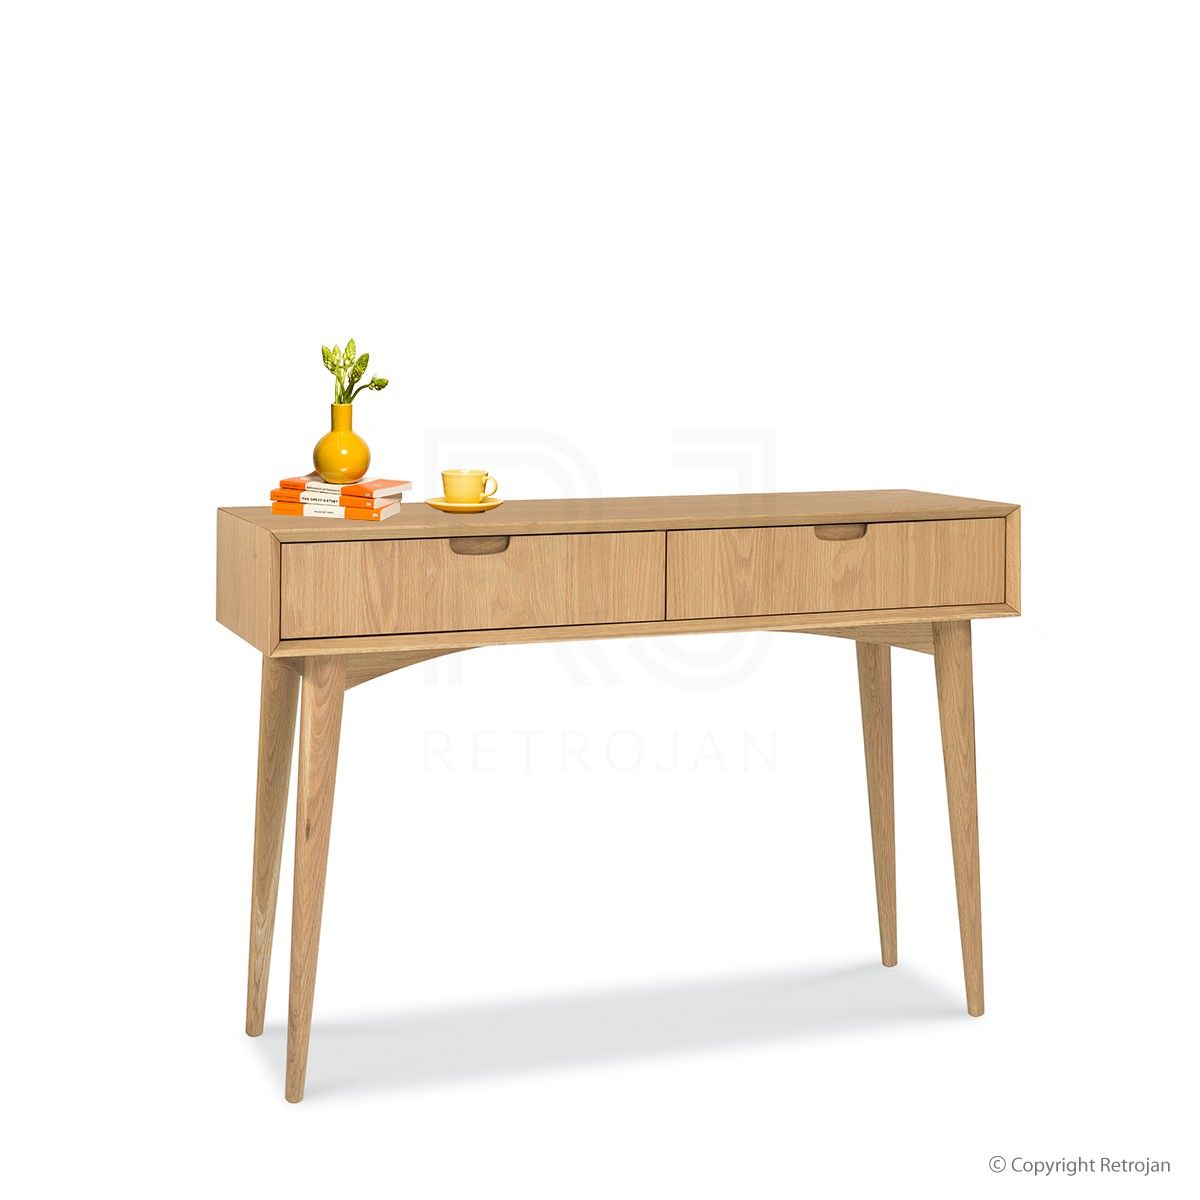 Buy Mia Console Table With Drawers Oak Online Rj Living Oak Console Table Console Table Scandi Dressing Table